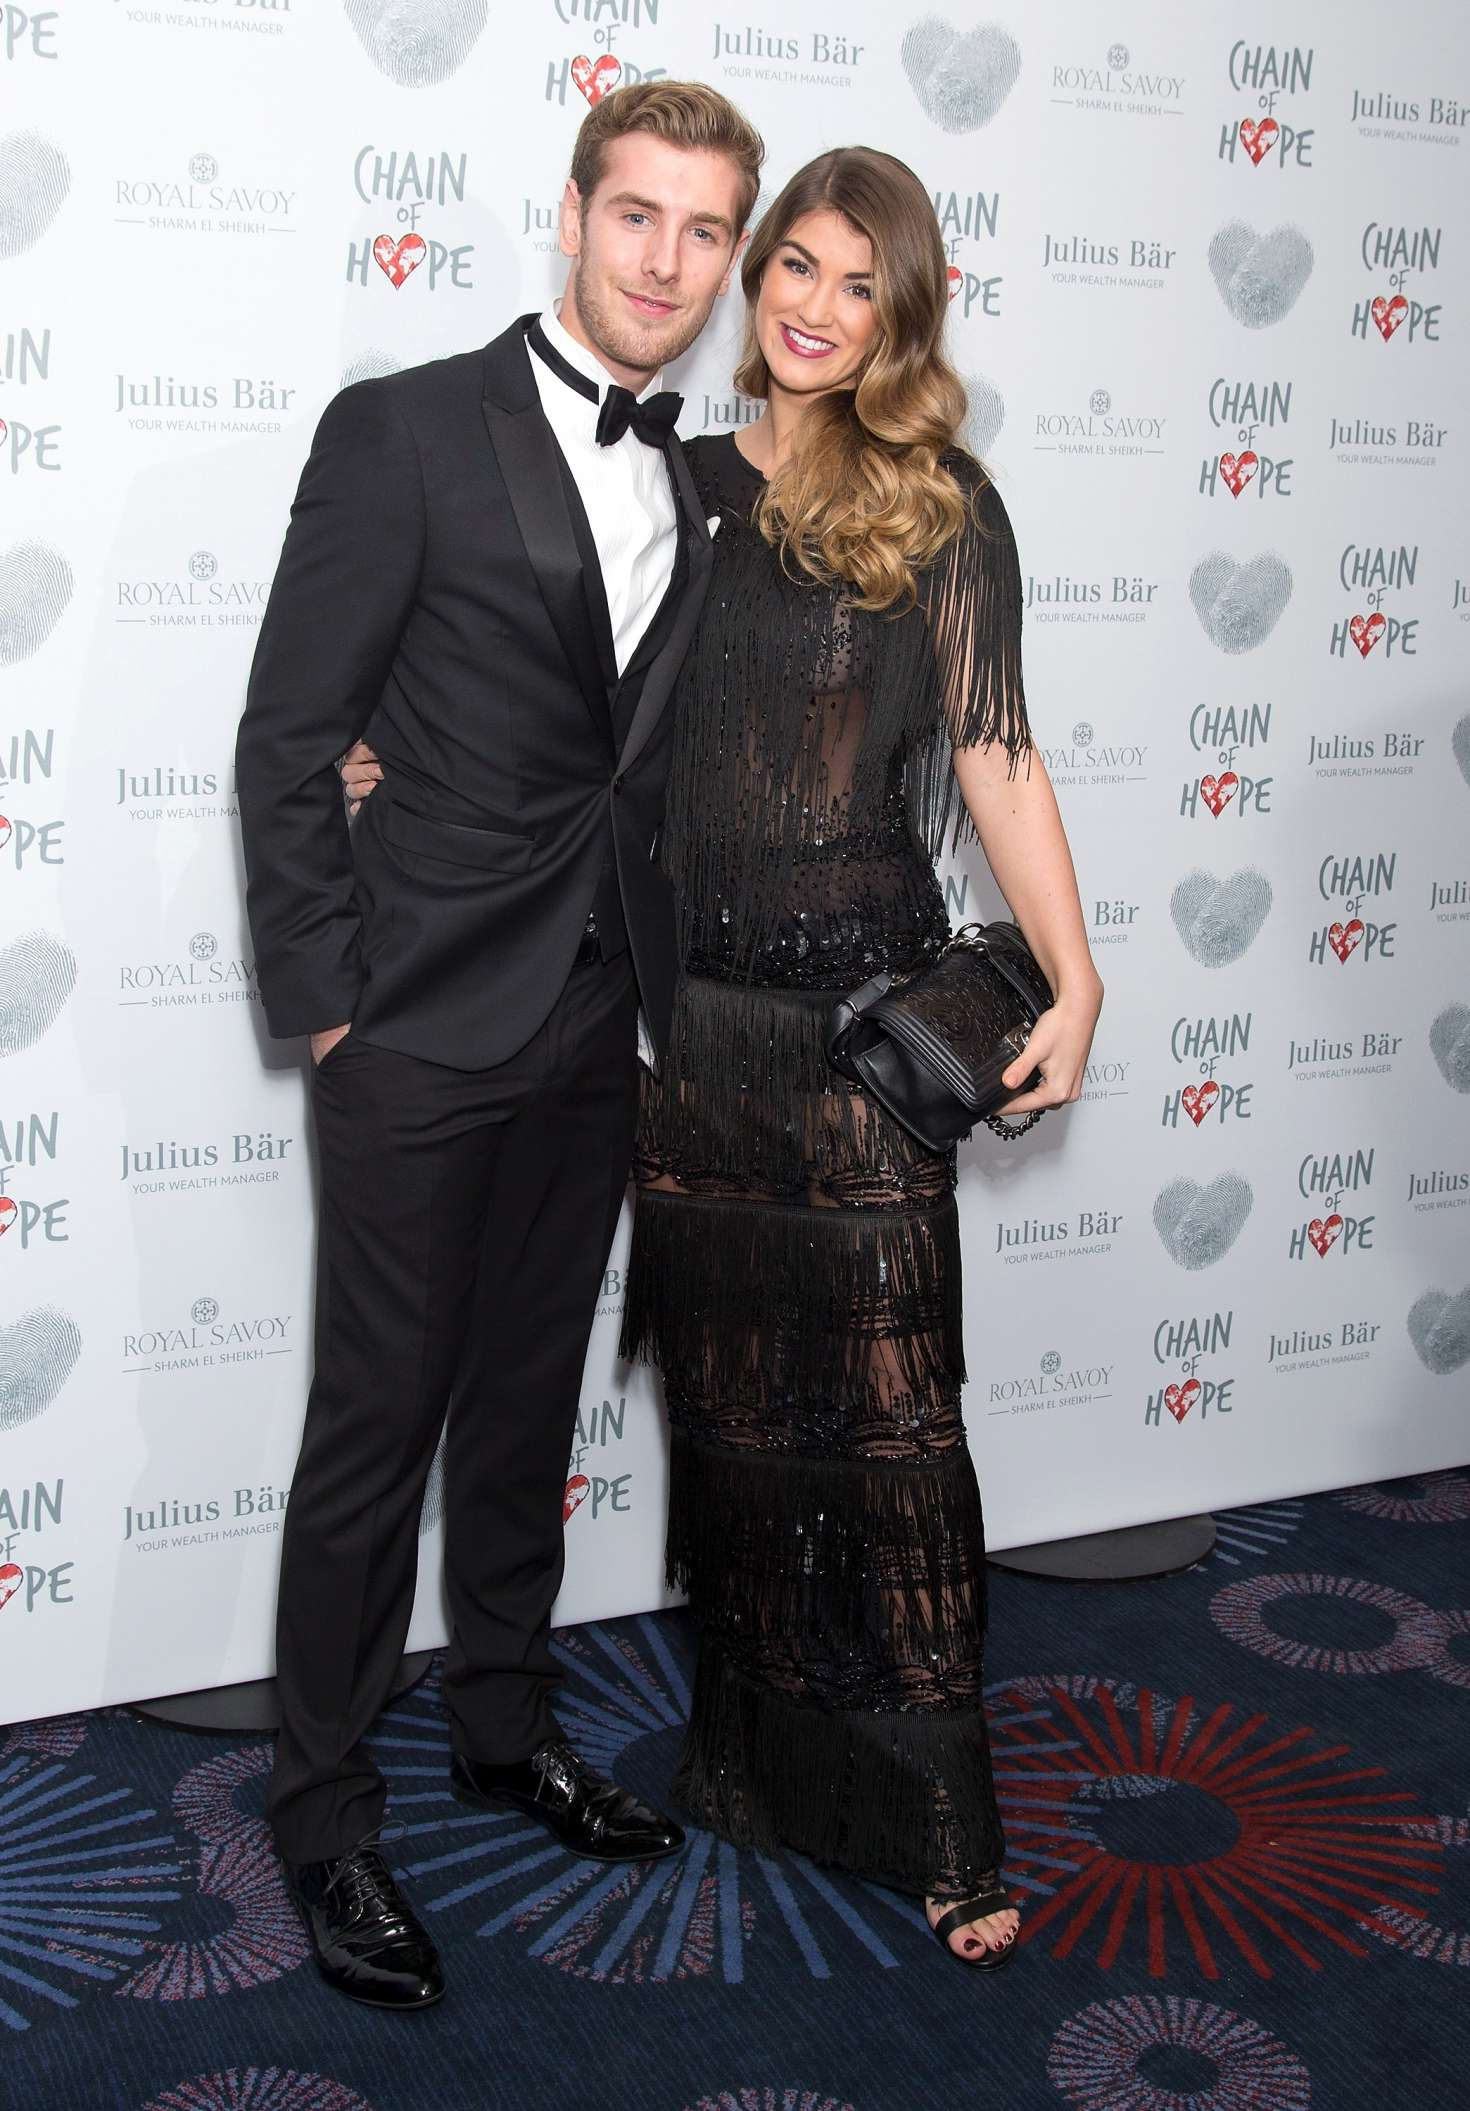 Amy Willerton 2016 : Amy Willerton: Chain Of Hope Annual Gala Ball 2016 -05